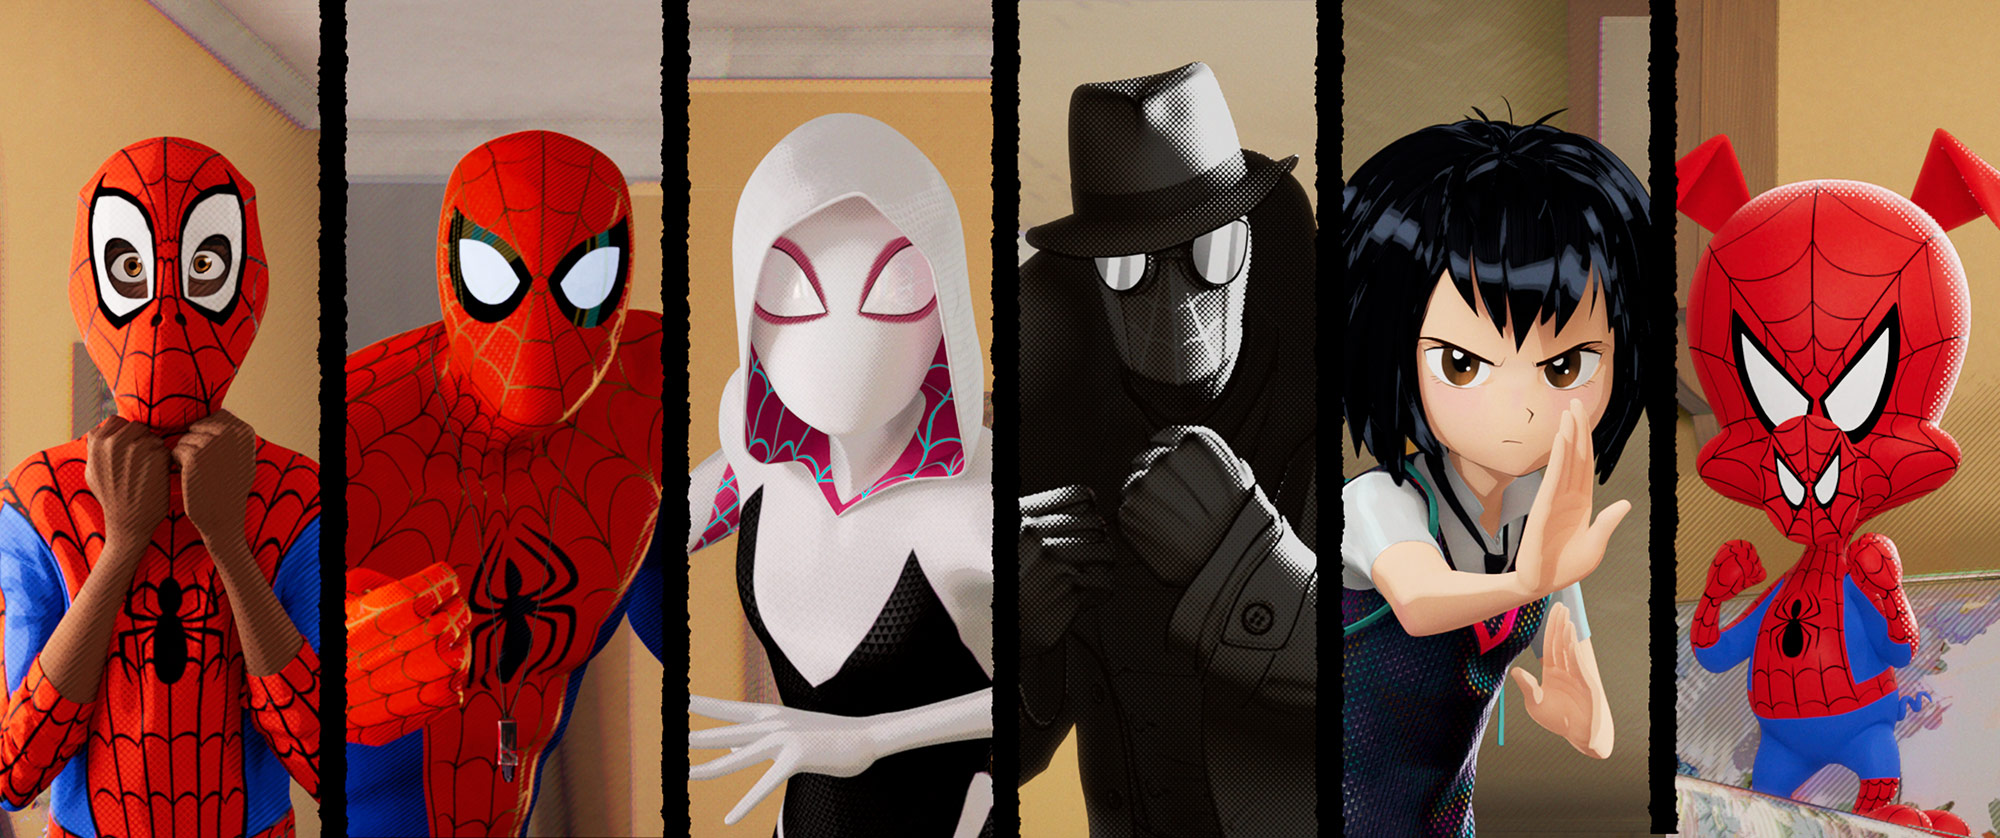 thompson_09 L'incredibile arte dietro Spider-Man into the Spider-Verse